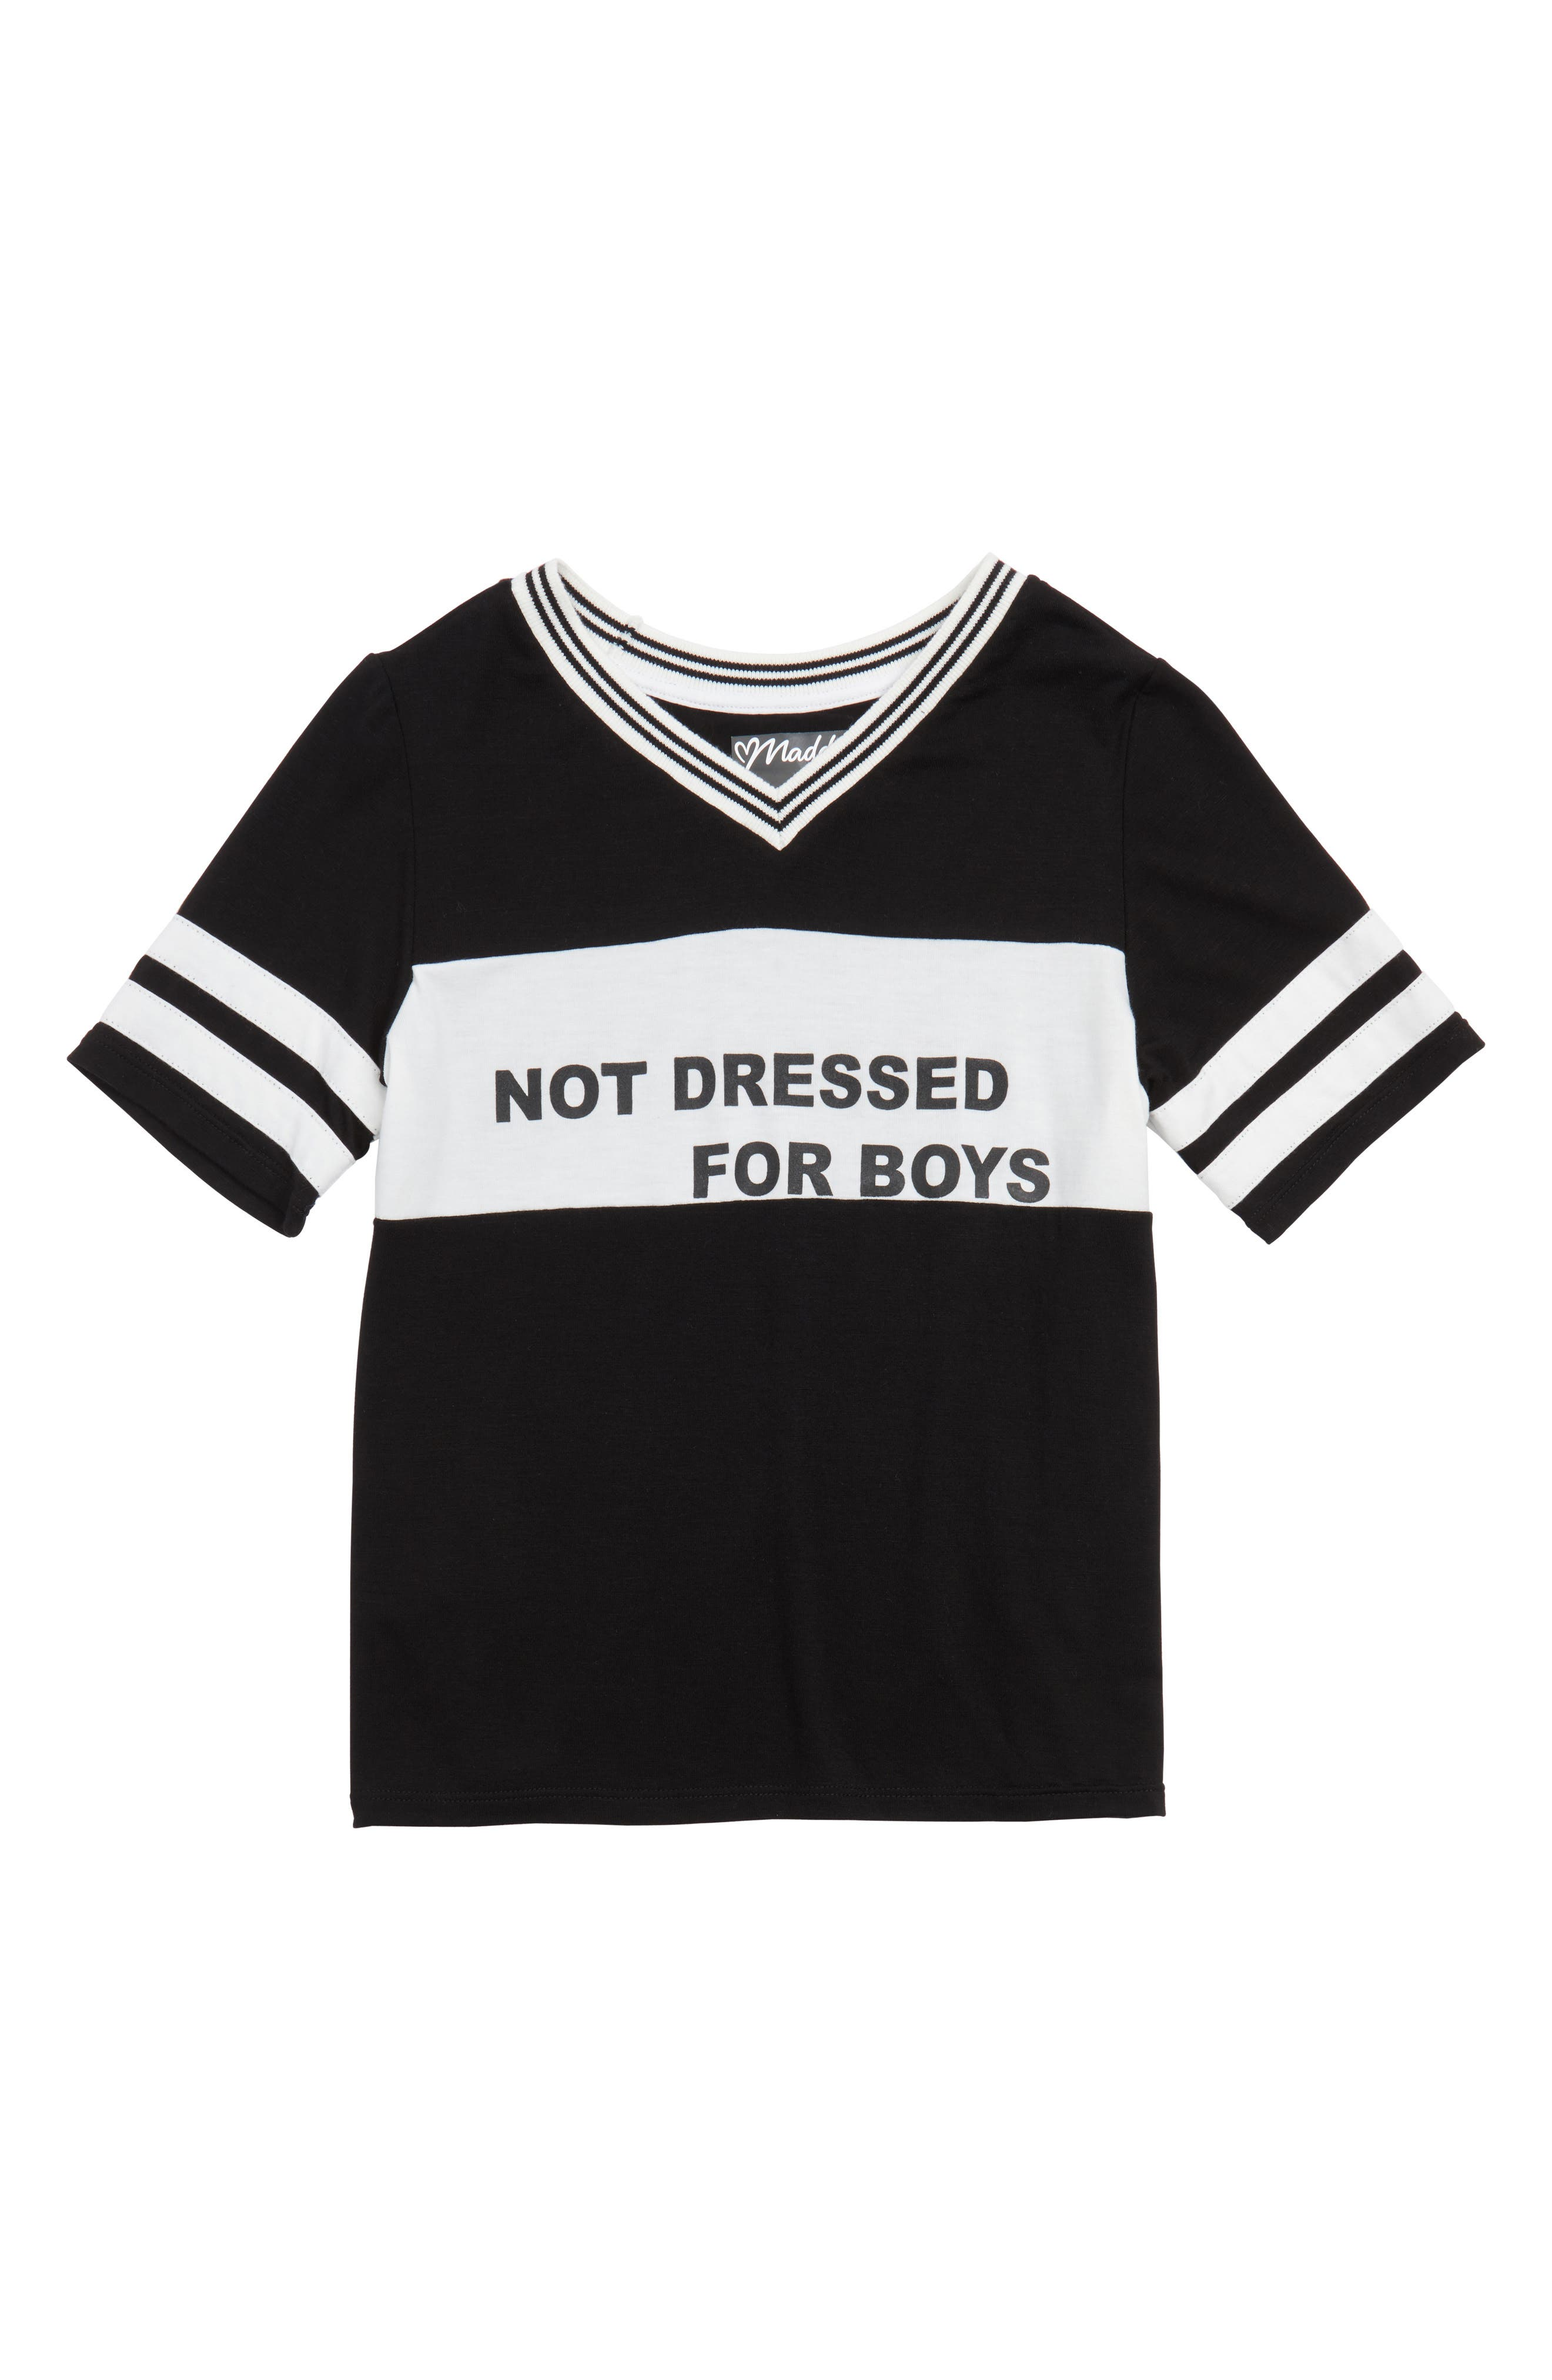 Not Dressed for Boys Tee,                         Main,                         color, 001